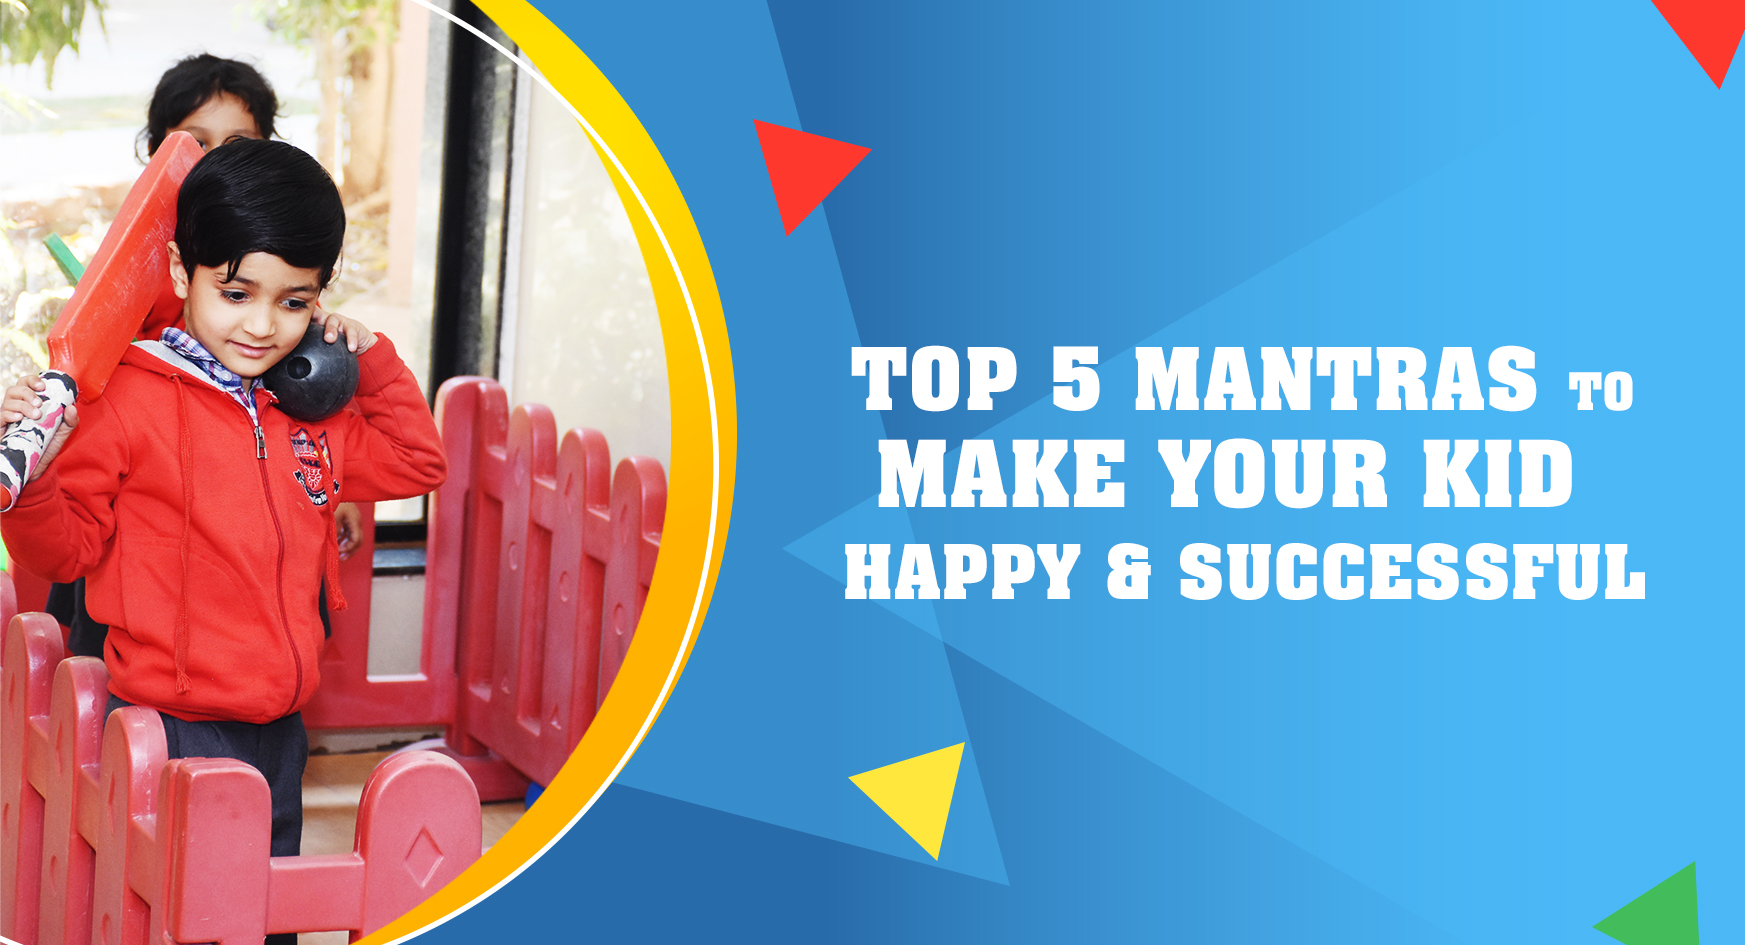 Top 5 Mantras to make your kid Happy & Successful